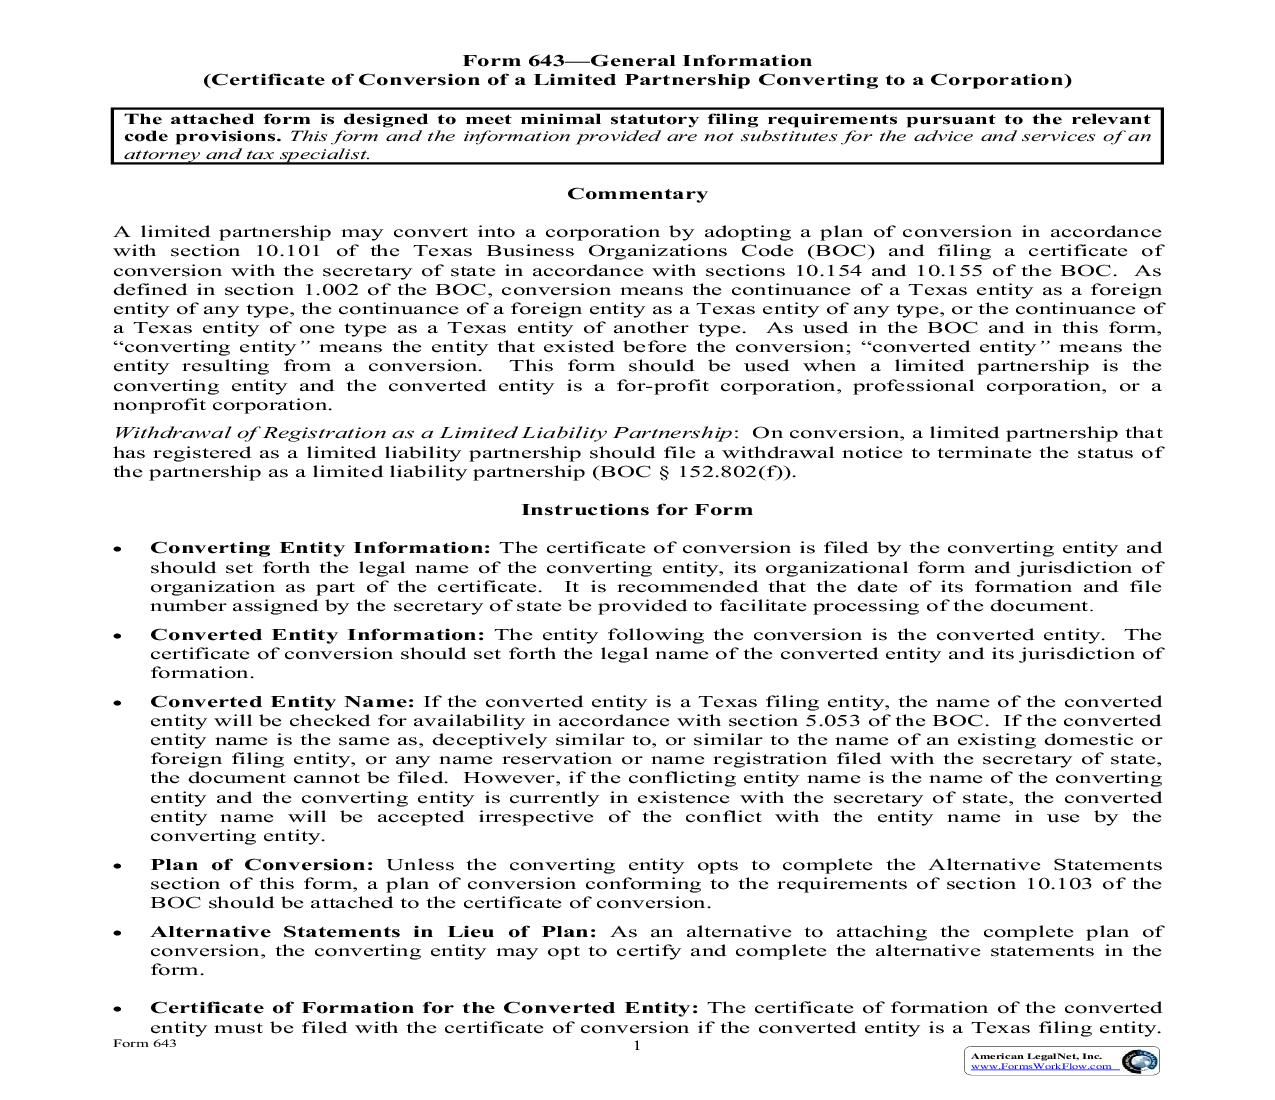 Certificate Of Conversion Of A Limited Partnership Converting To A Corporation {643} | Pdf Fpdf Doc Docx | Texas